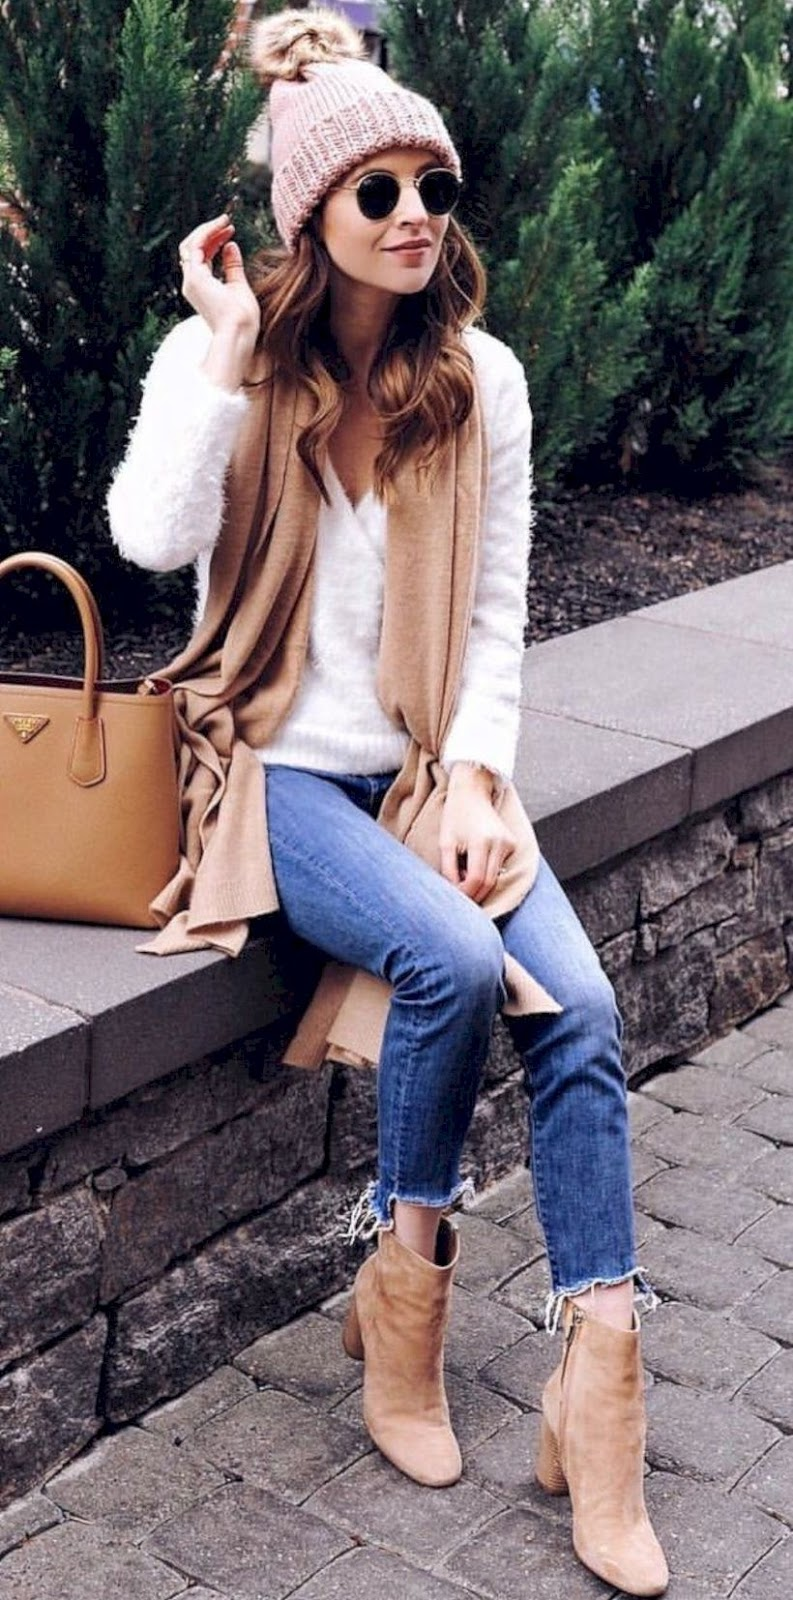 winter trends | nude boots + boyfriend jeans + bag + hat + white sweater + cashmere scarf